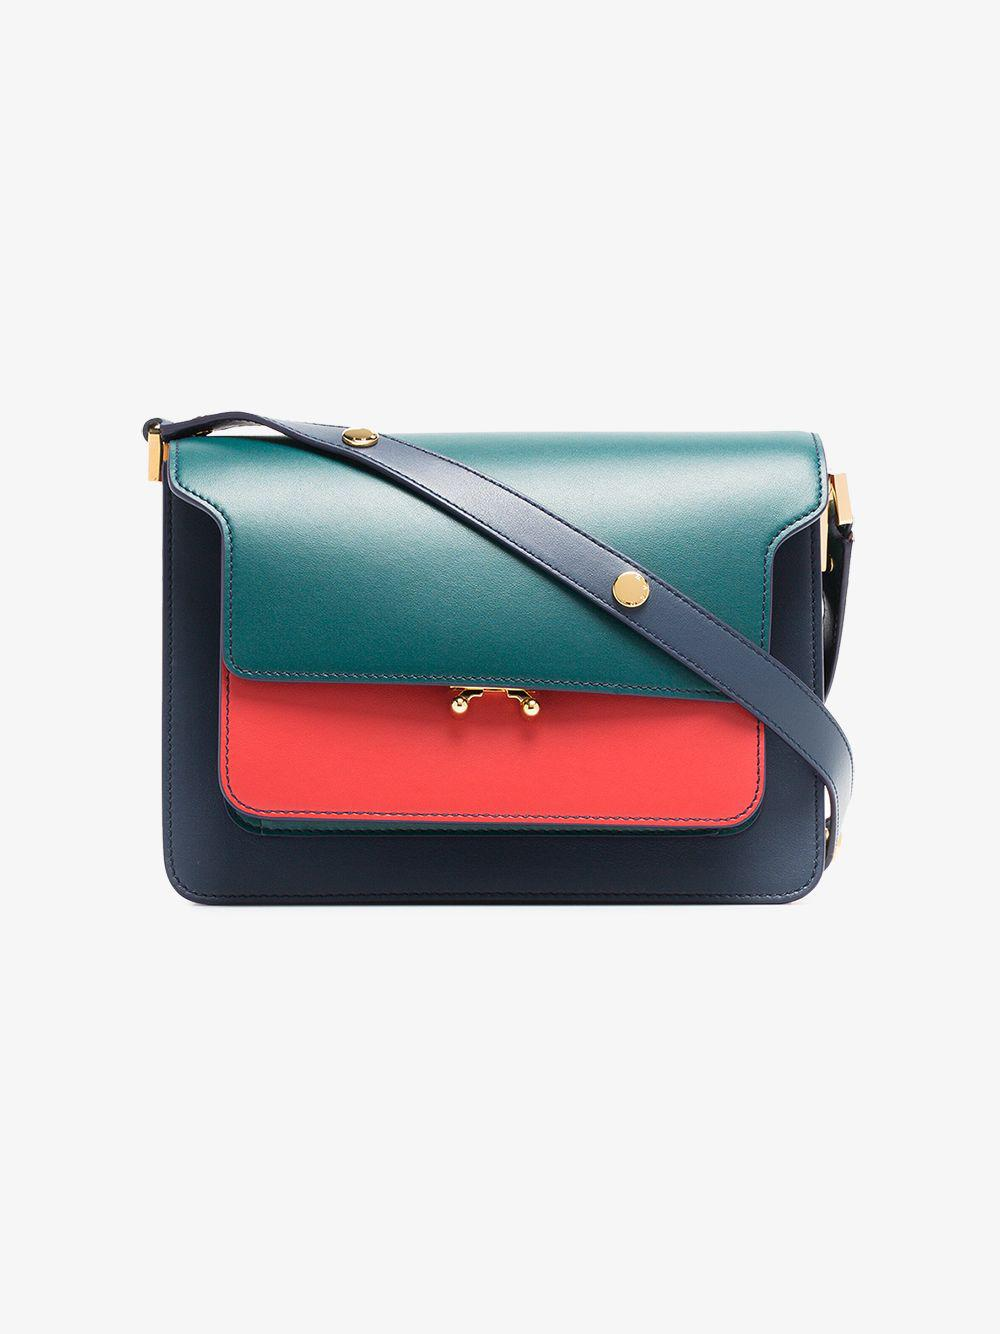 255ad8f4b76 Marni - Multicolor Green, Red And Blue Trunk Small Leather Handbag - Lyst.  View fullscreen